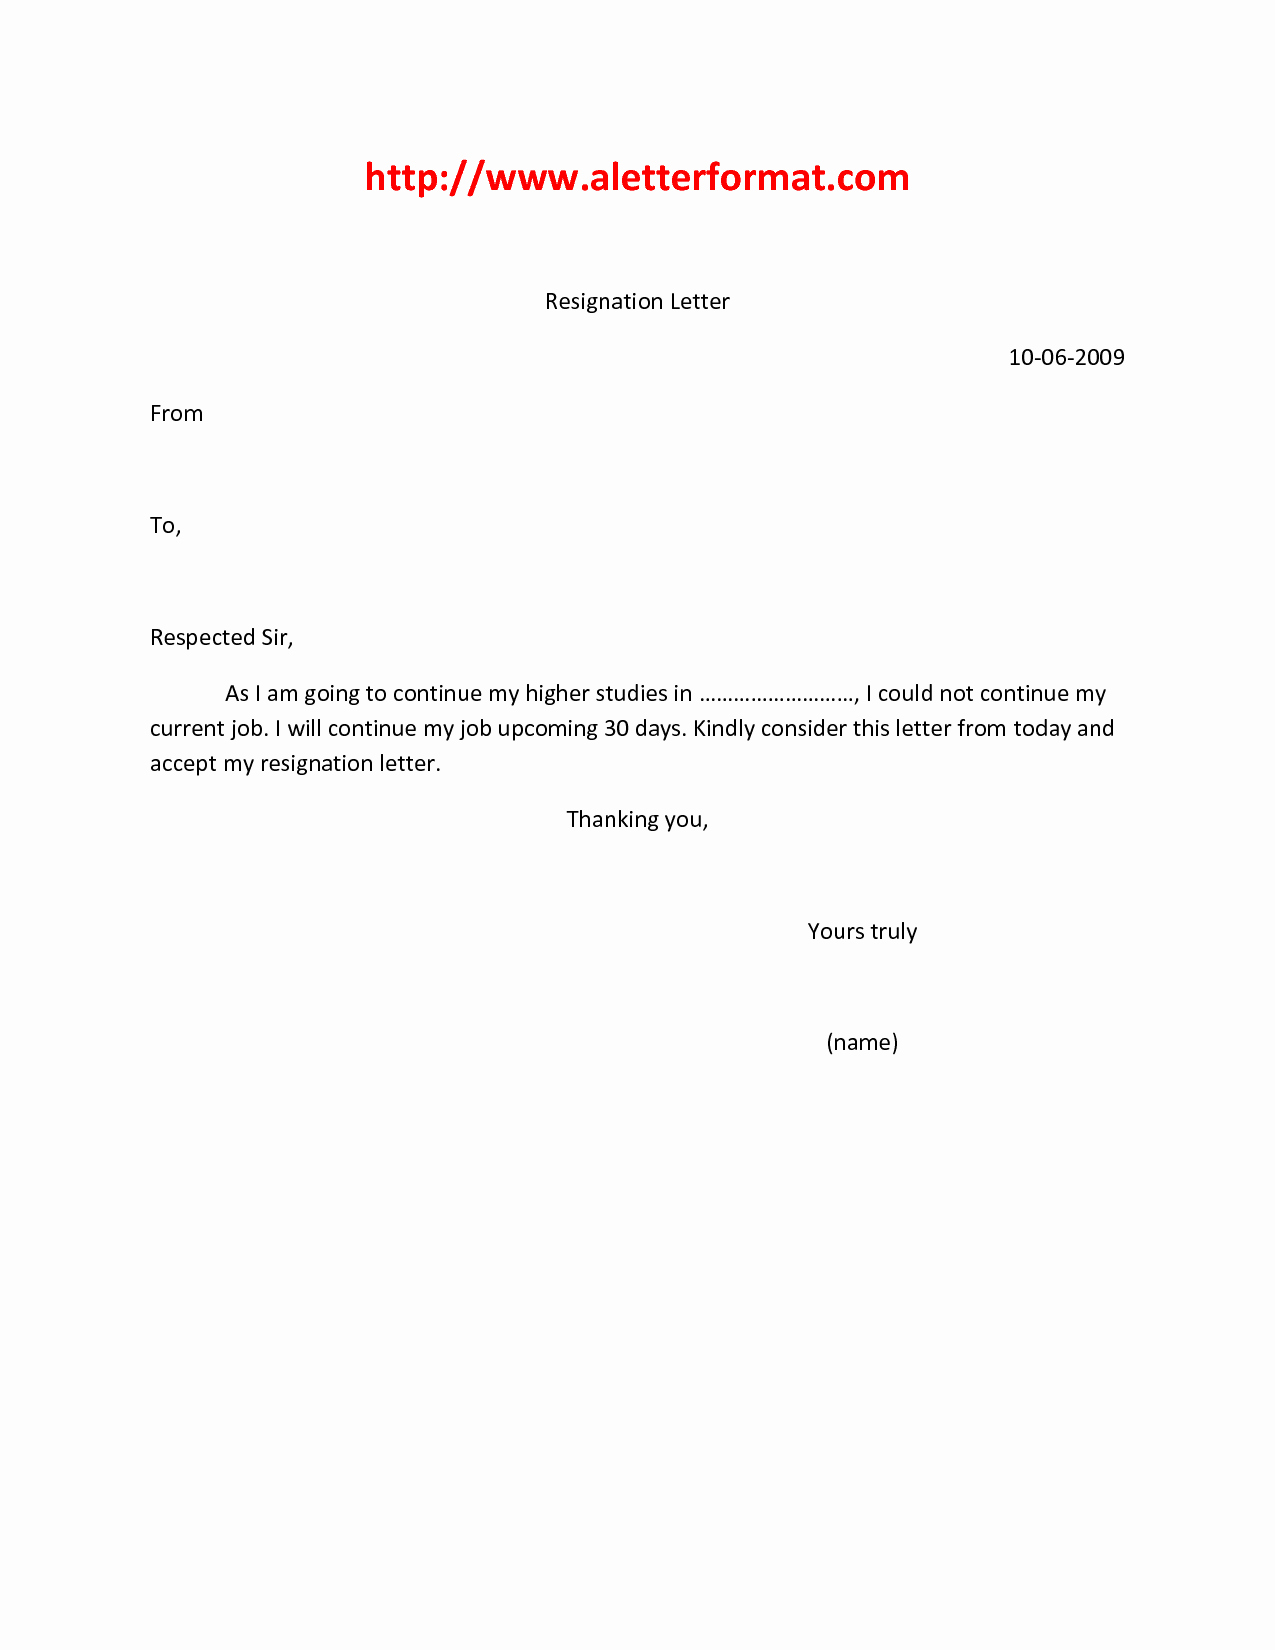 Letter Of Resignation Template Download Luxury Simple Resignation Letter Word Template